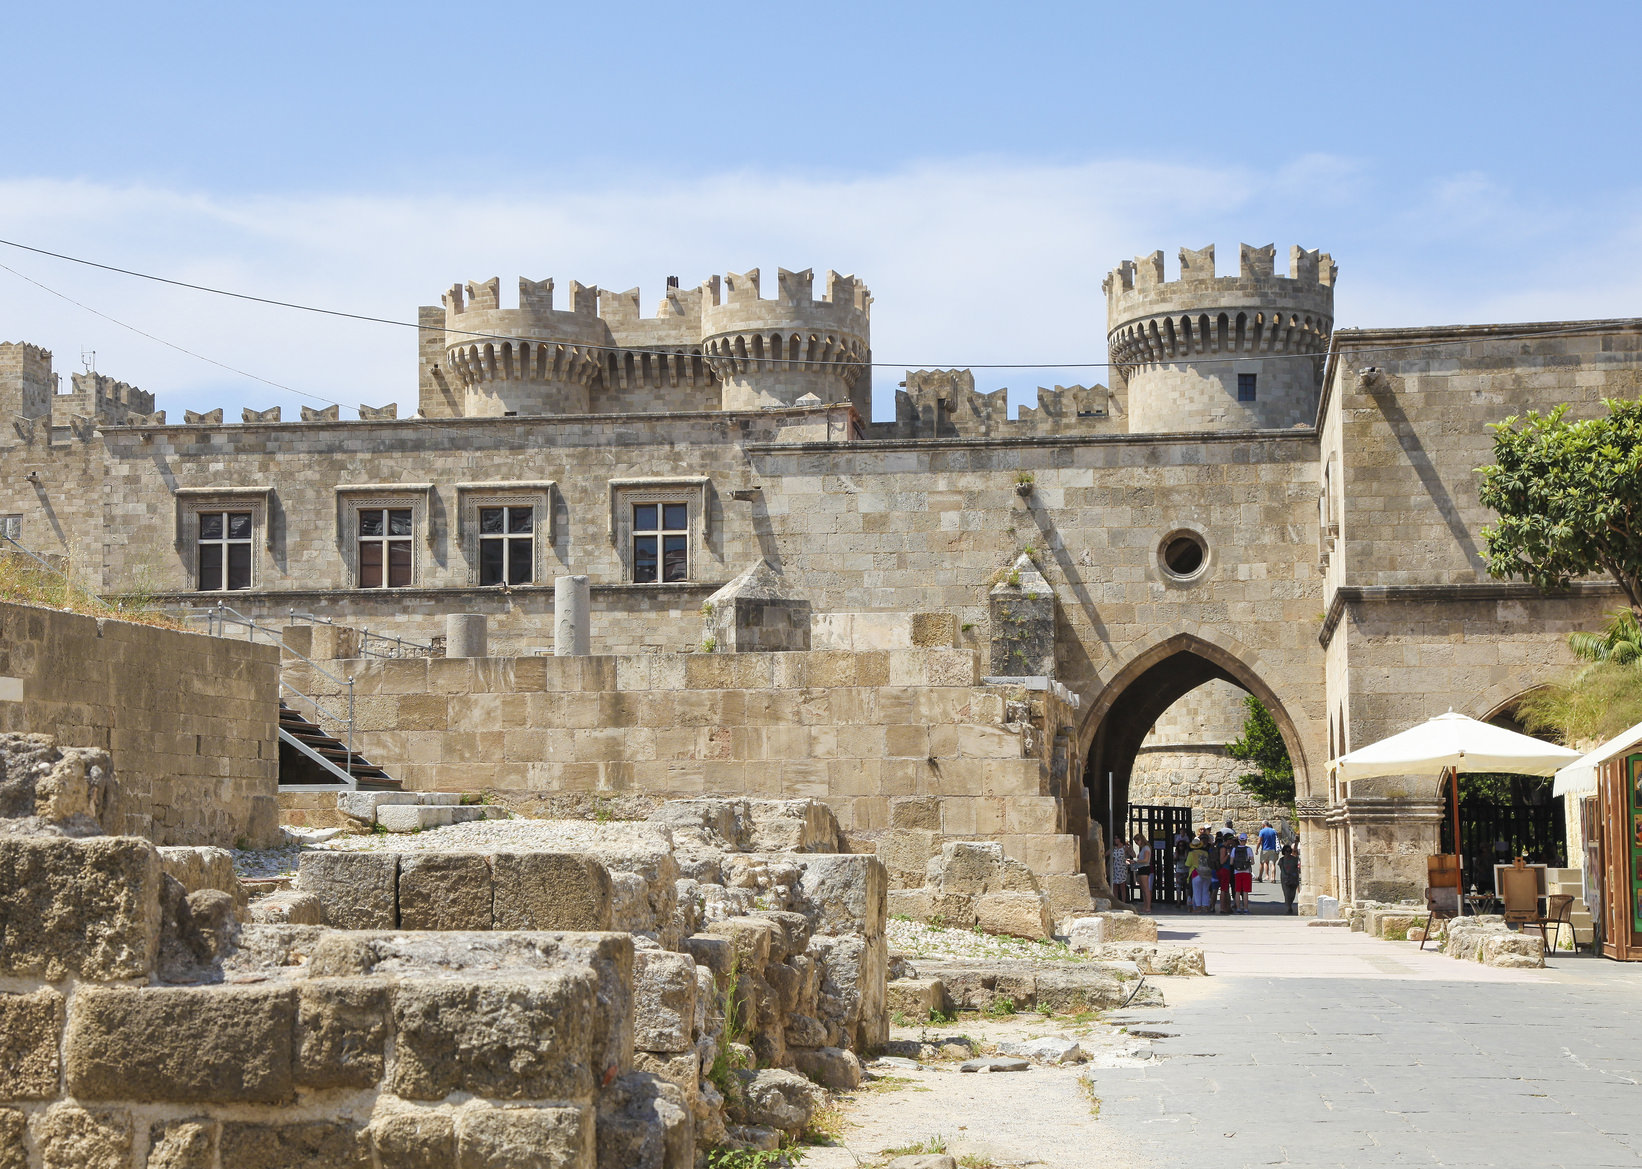 Rhodes, Greece - June 7, 2015: Unidentified people at the Palace of the Grand Master of the Knights of Rhodes, a medieval castle of the Hospitaller Knights on the island of Rhodes, Greece.